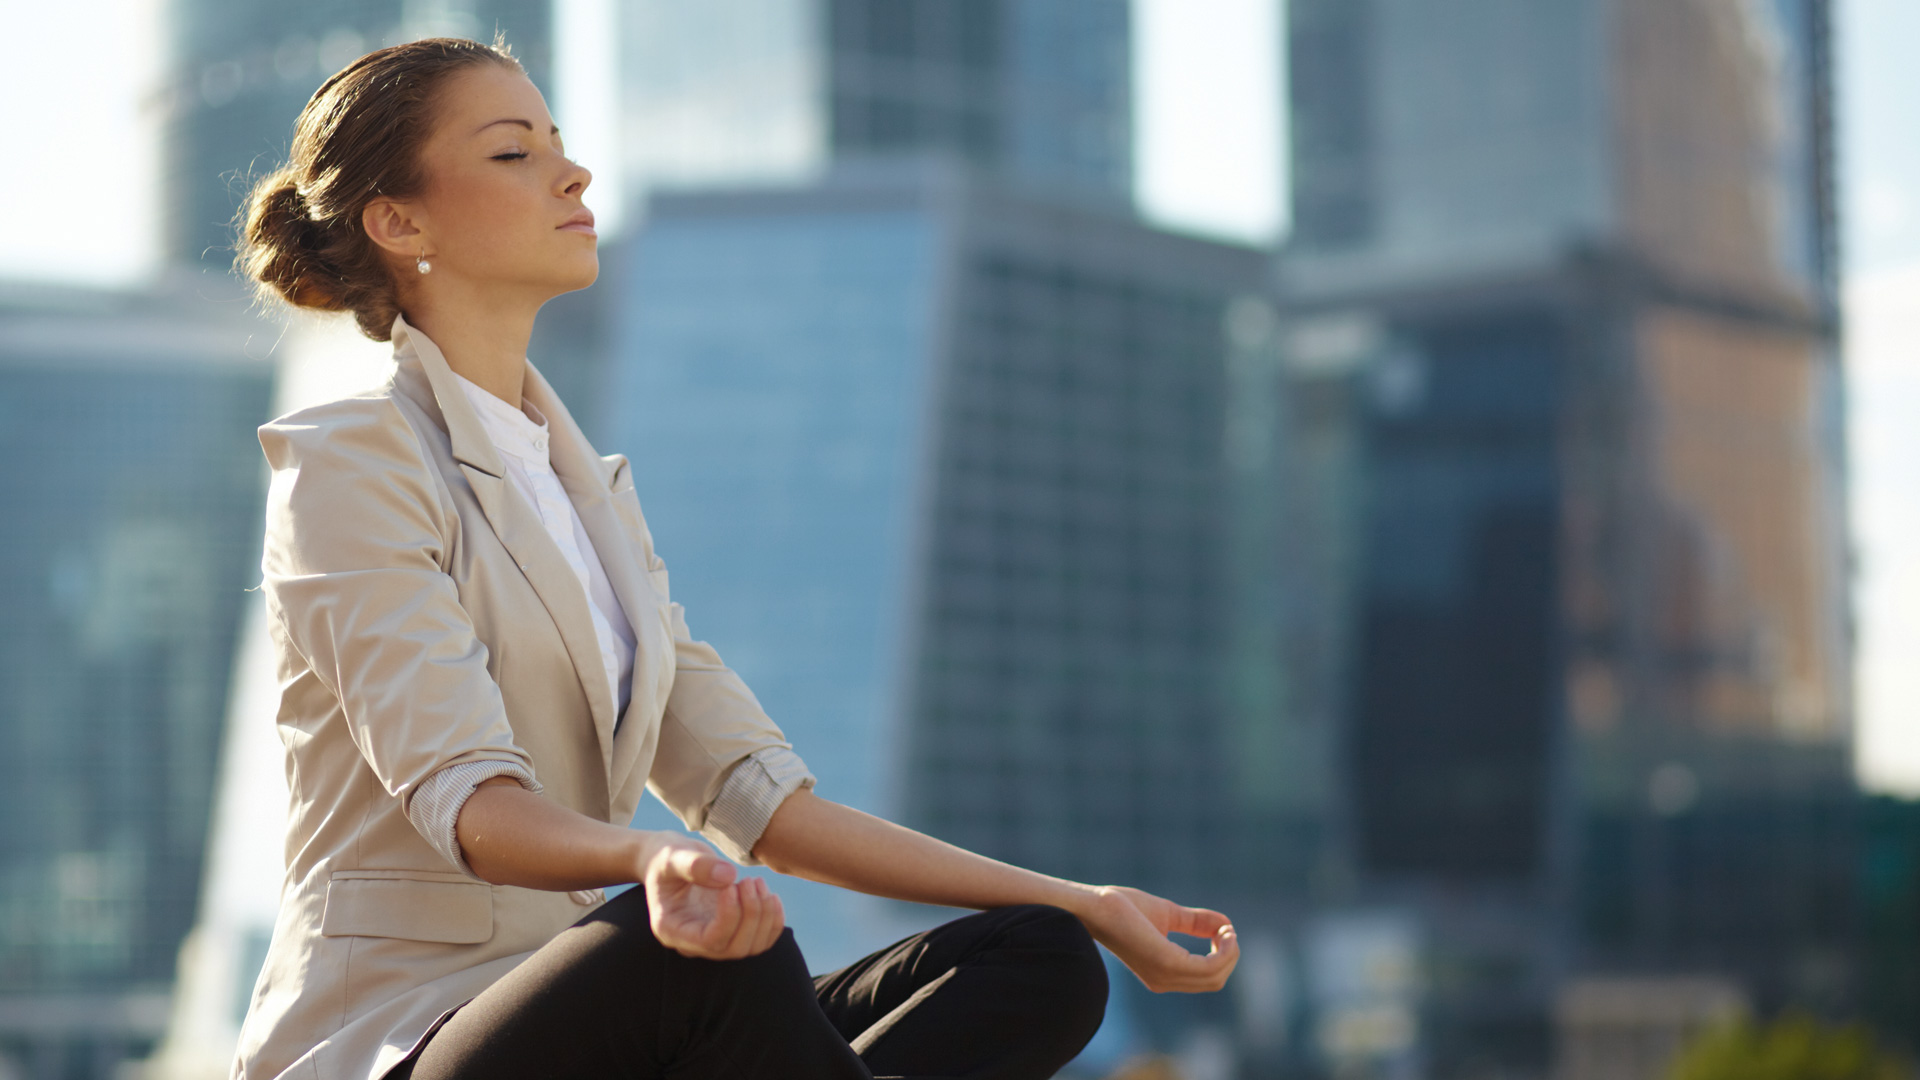 manage your stress with Tao at work